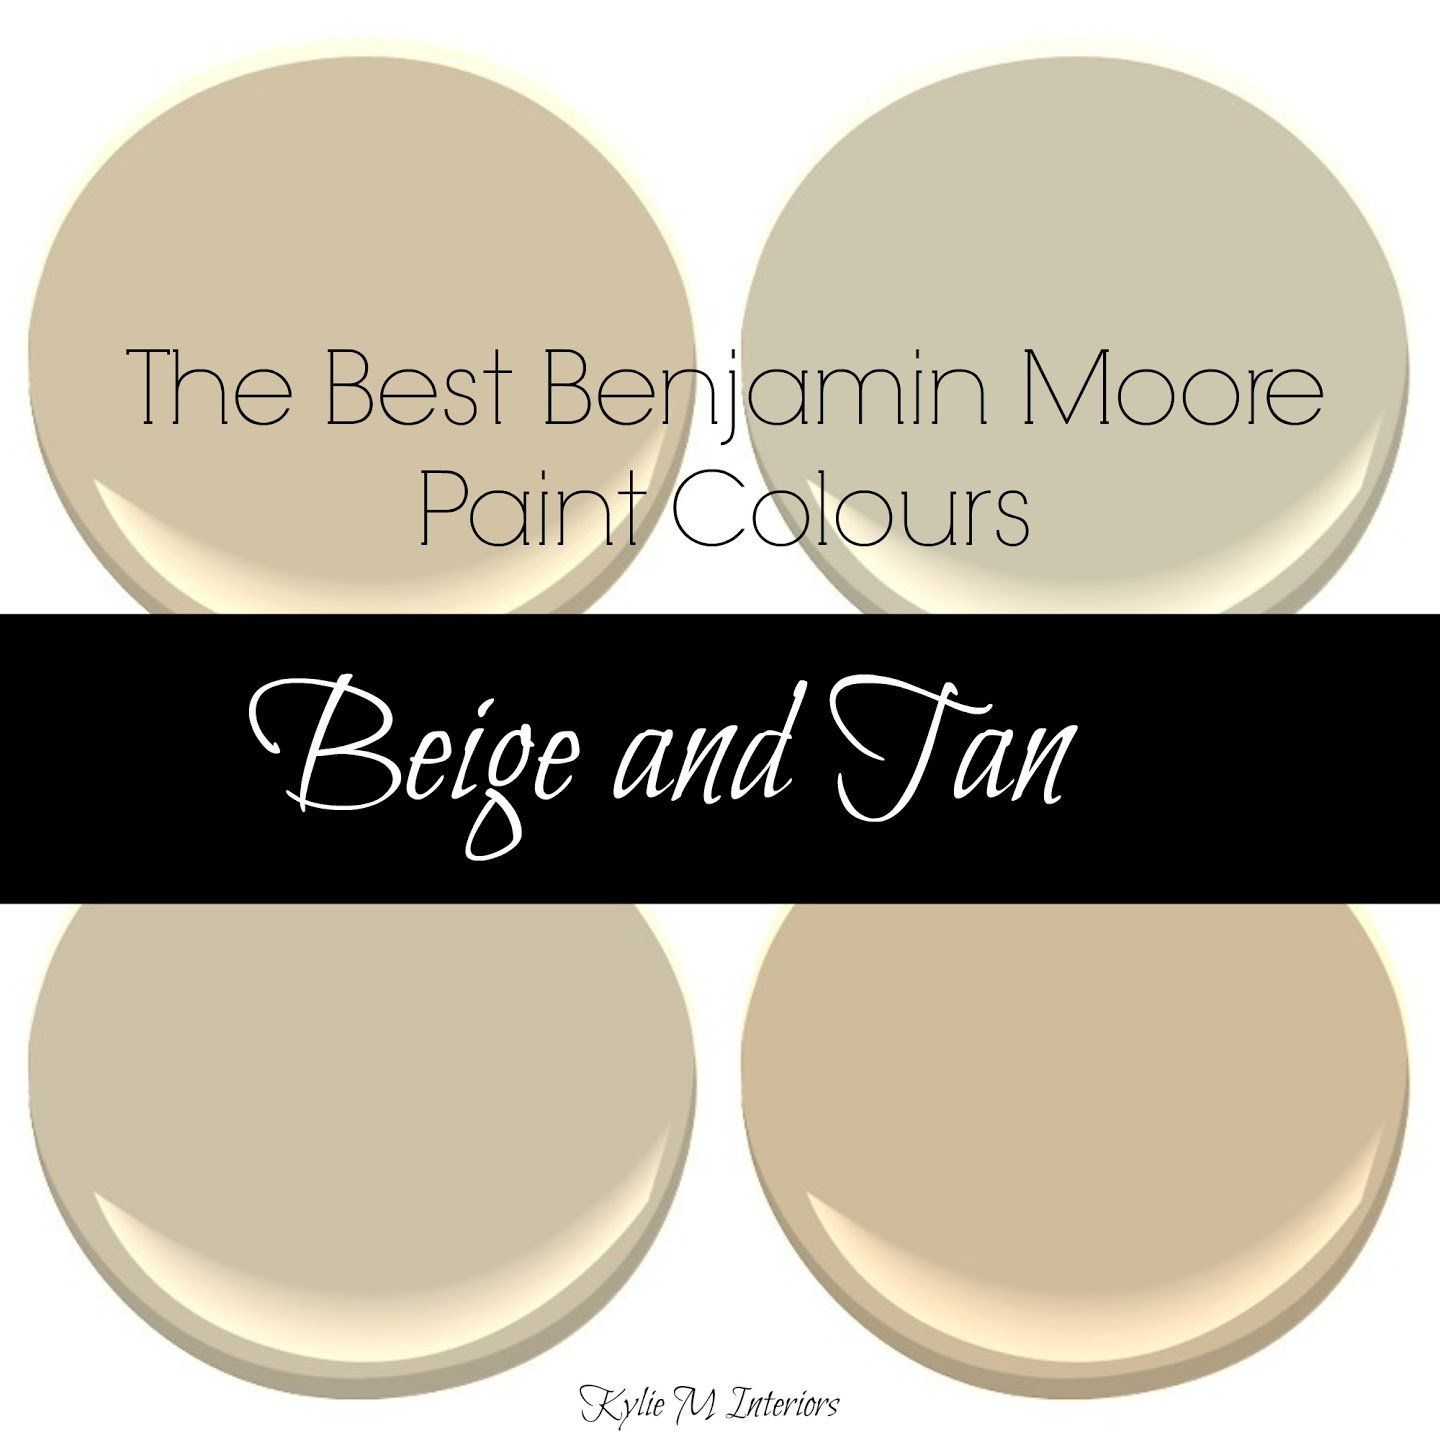 The best benjamin moore paint colours Beige tan and neutral colors